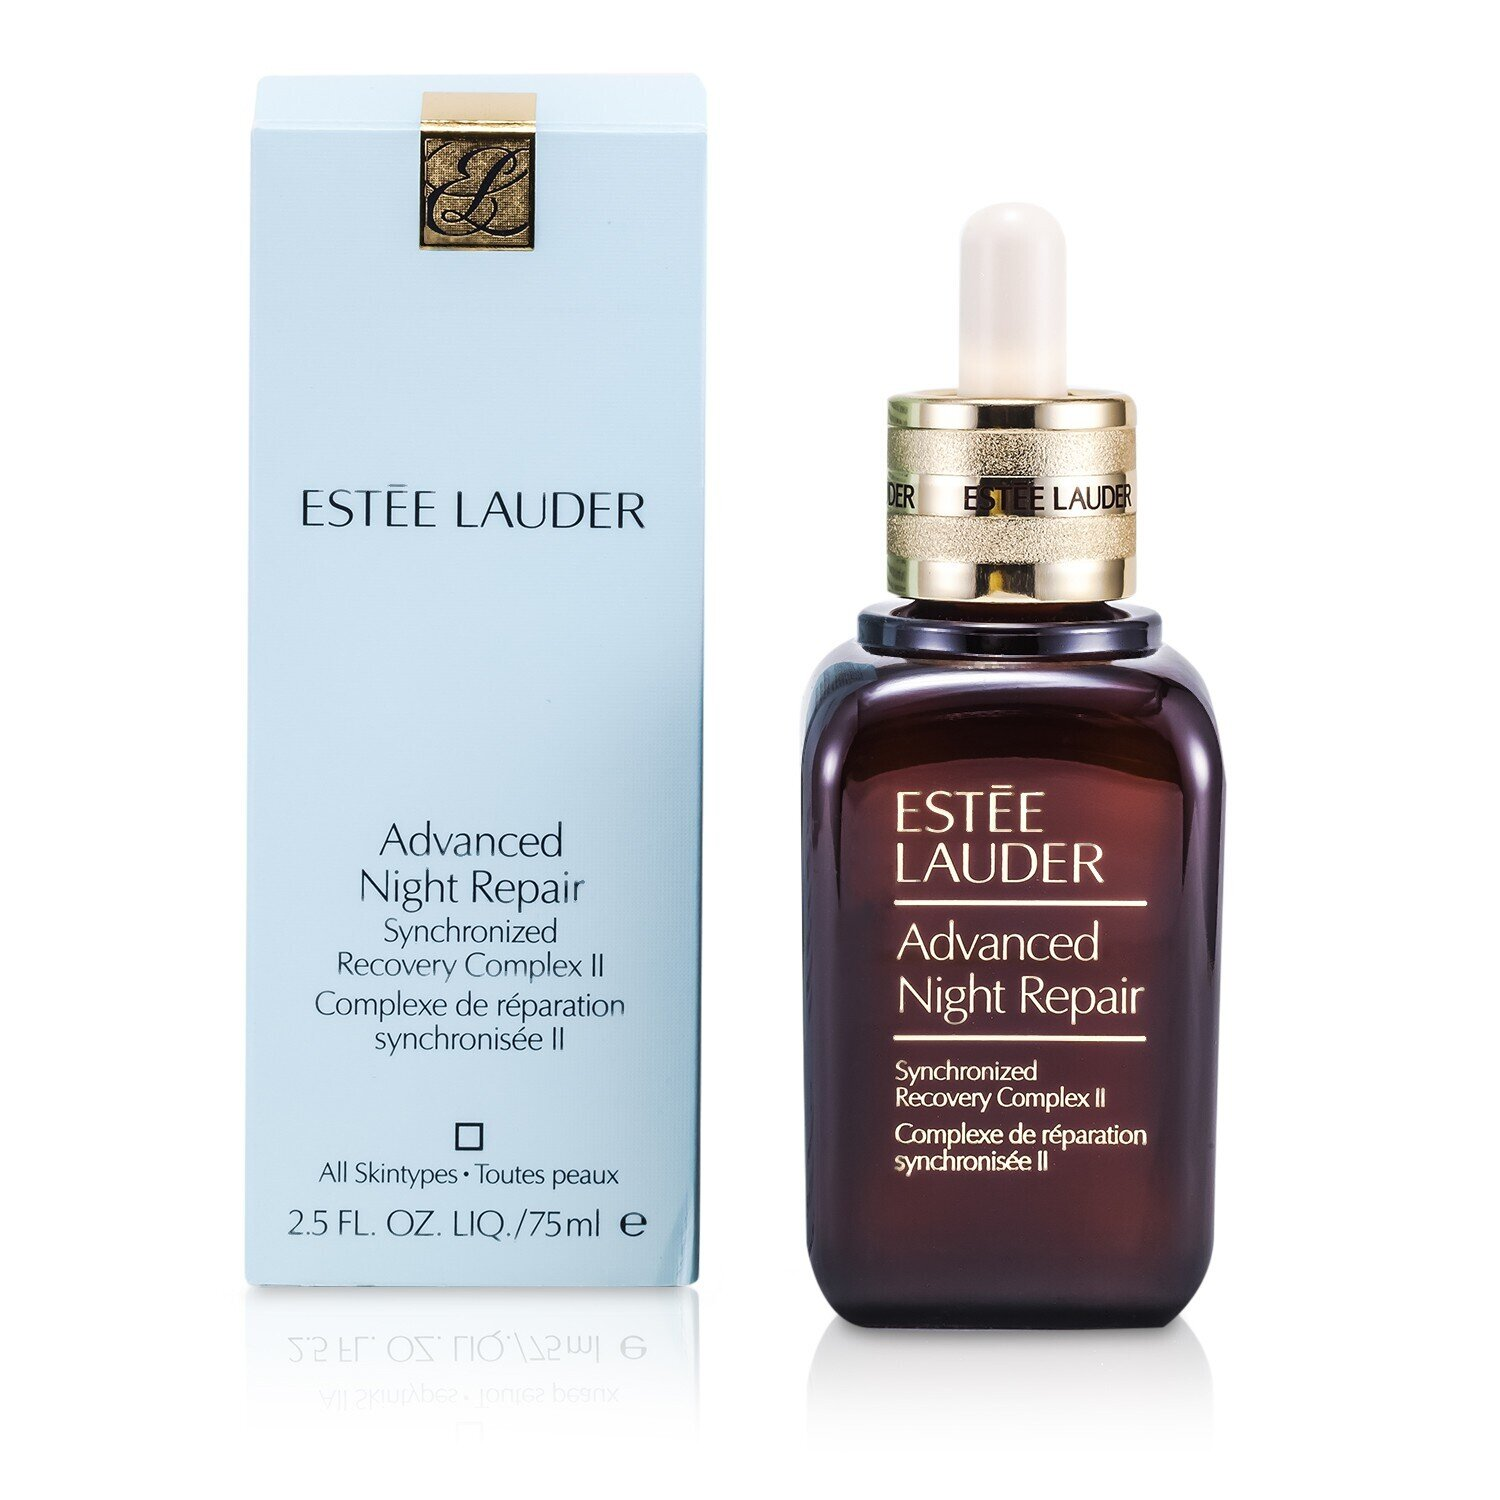 Estee-Lauder-Advanced-Night-Repair-Synchronized-Recovery-Complex-II-30ml-1oz thumbnail 11